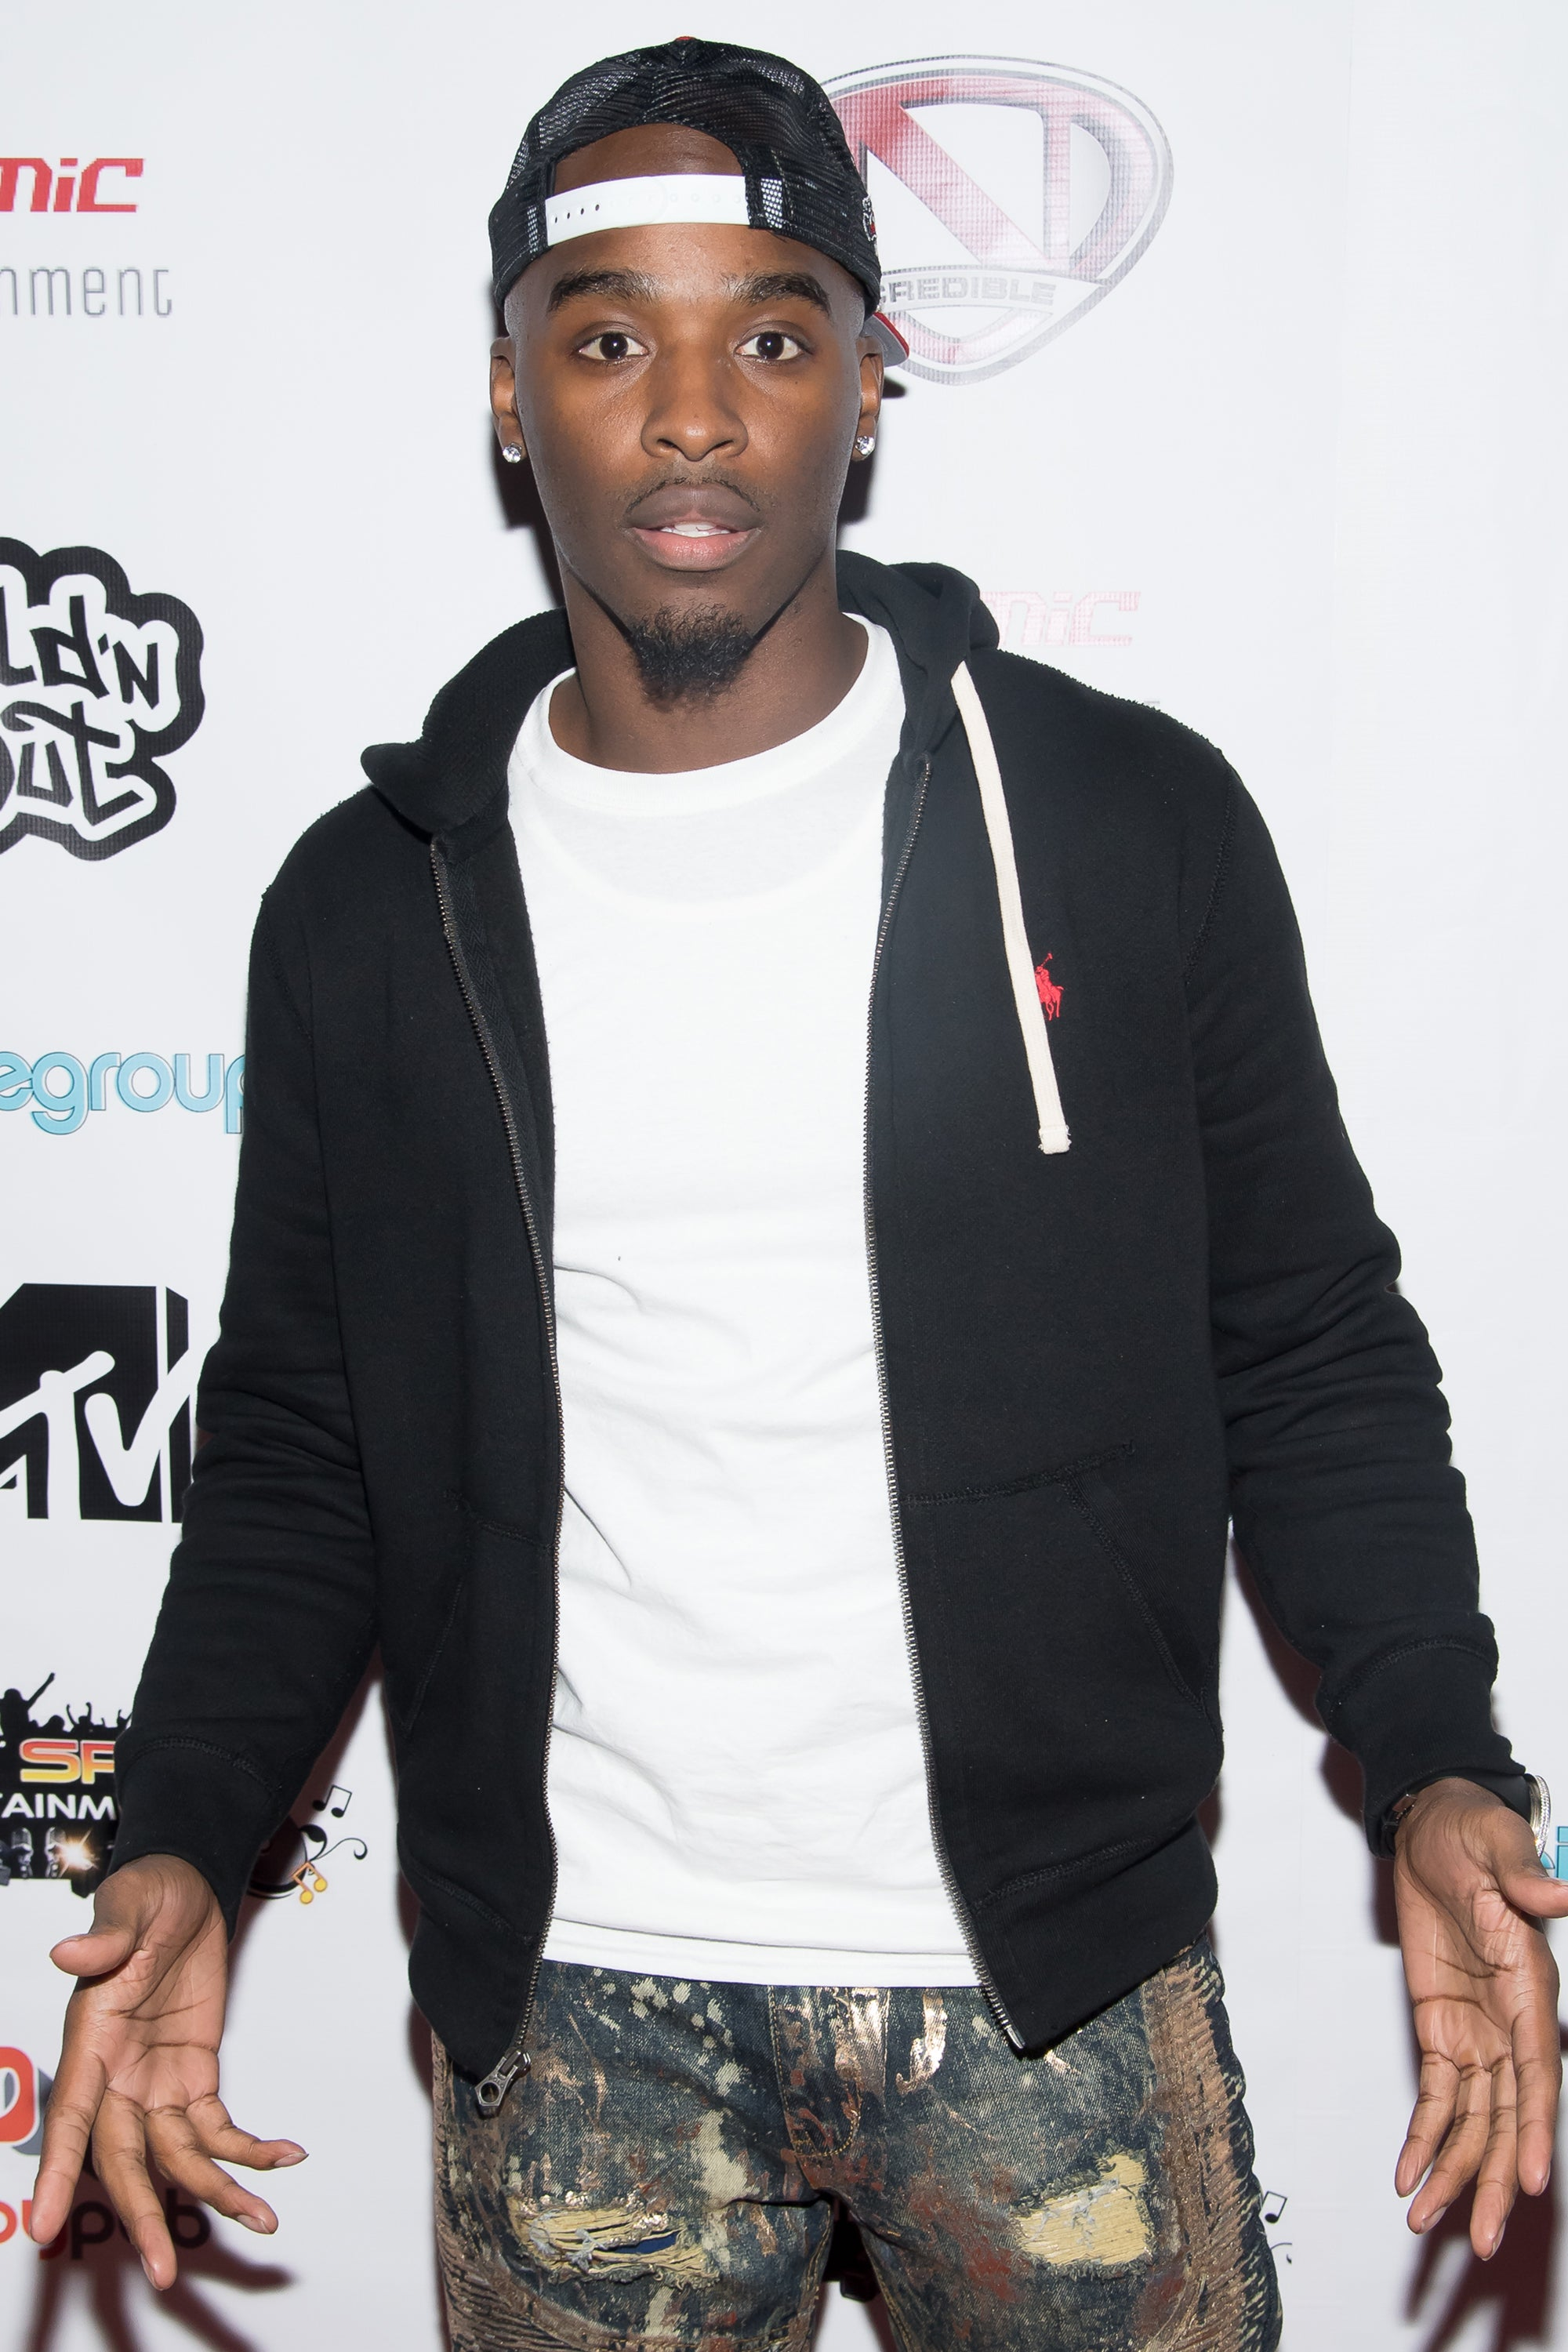 Hitman Holla attends Wild 'N Out Live at Arena NYC on November 4, 2016 in New York City